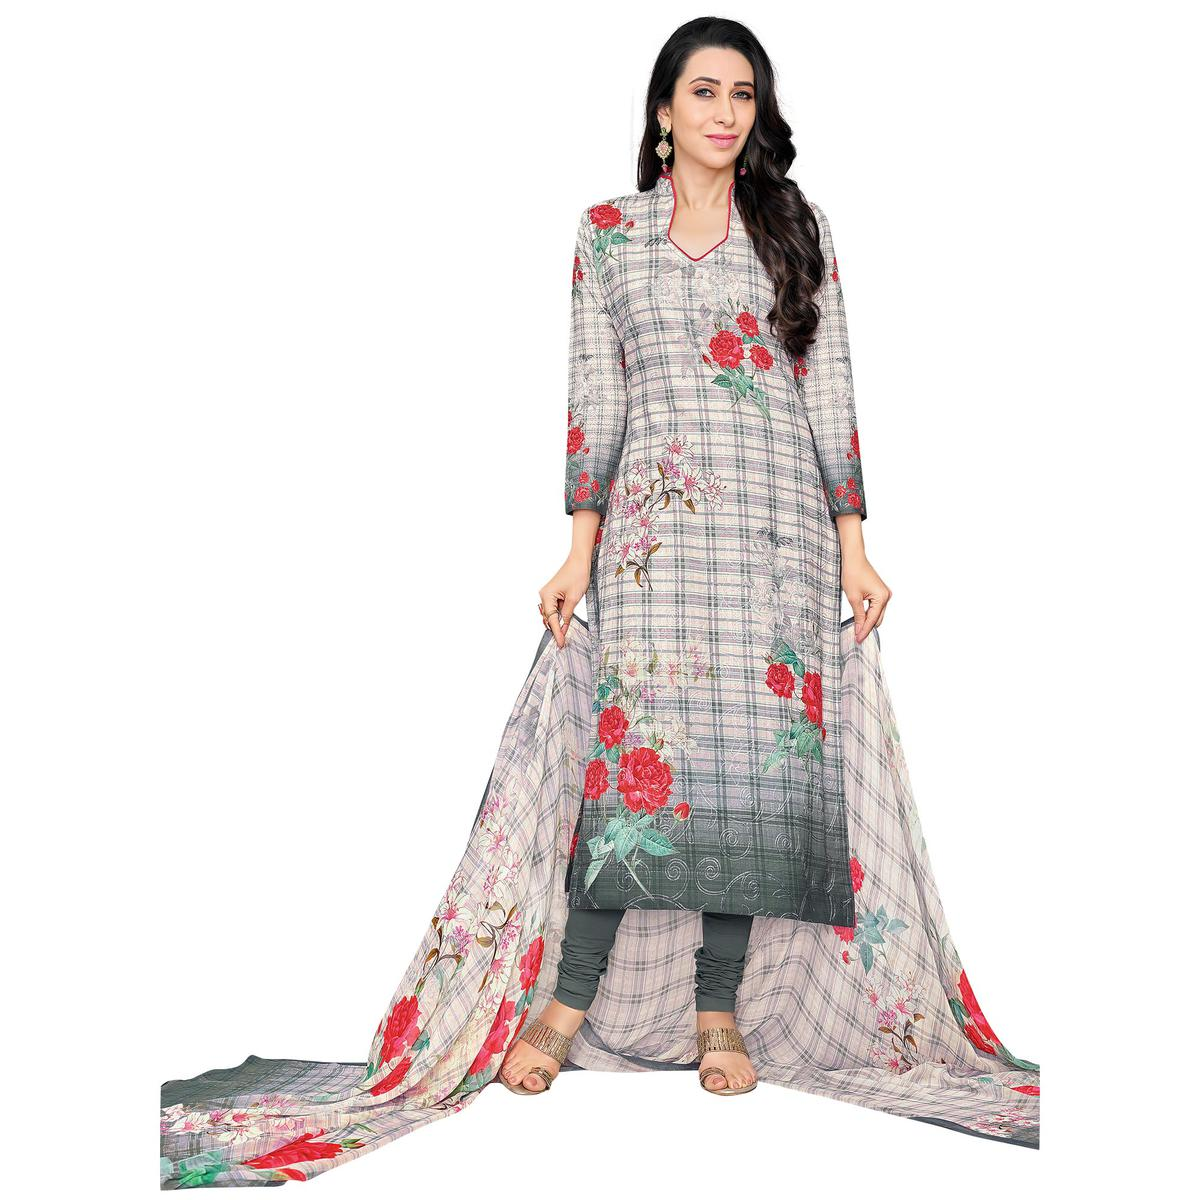 Glorious Grey Colored Casual Wear Digital Printed Pure Cotton Dress Material